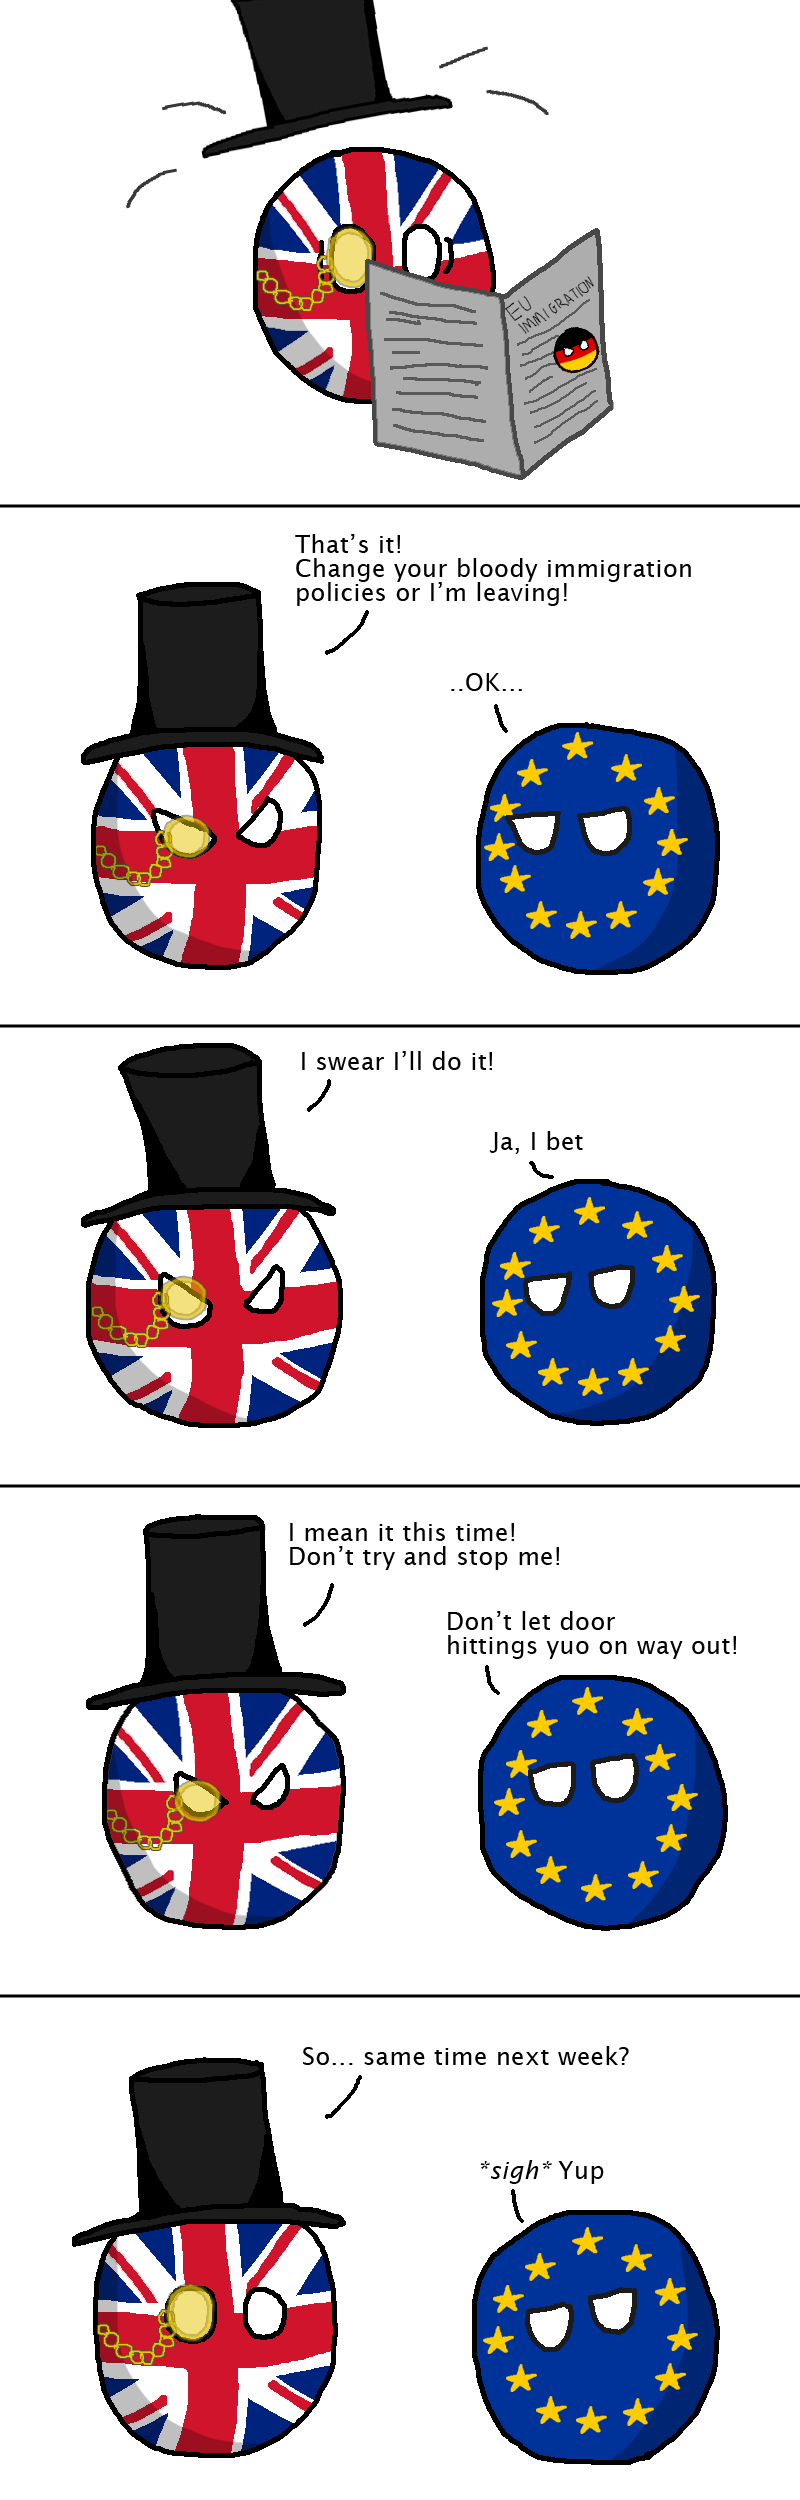 The UK leaves the EU...